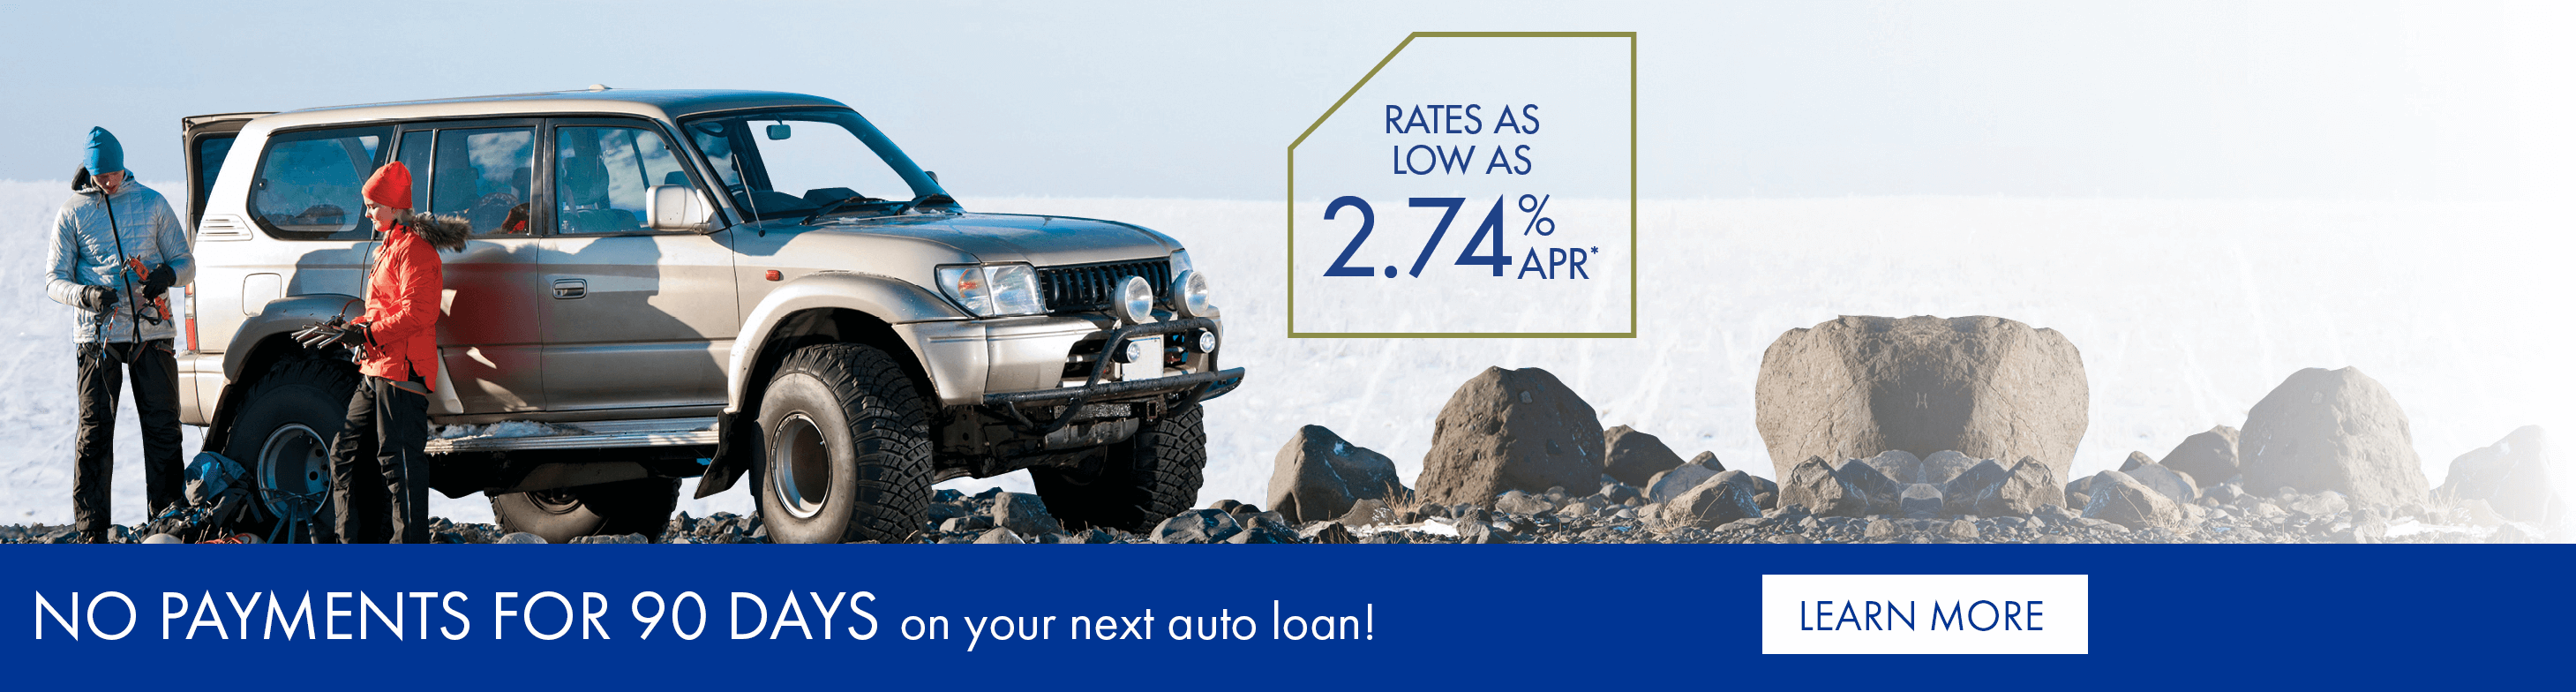 No payments for 90 days on your next auto loan!